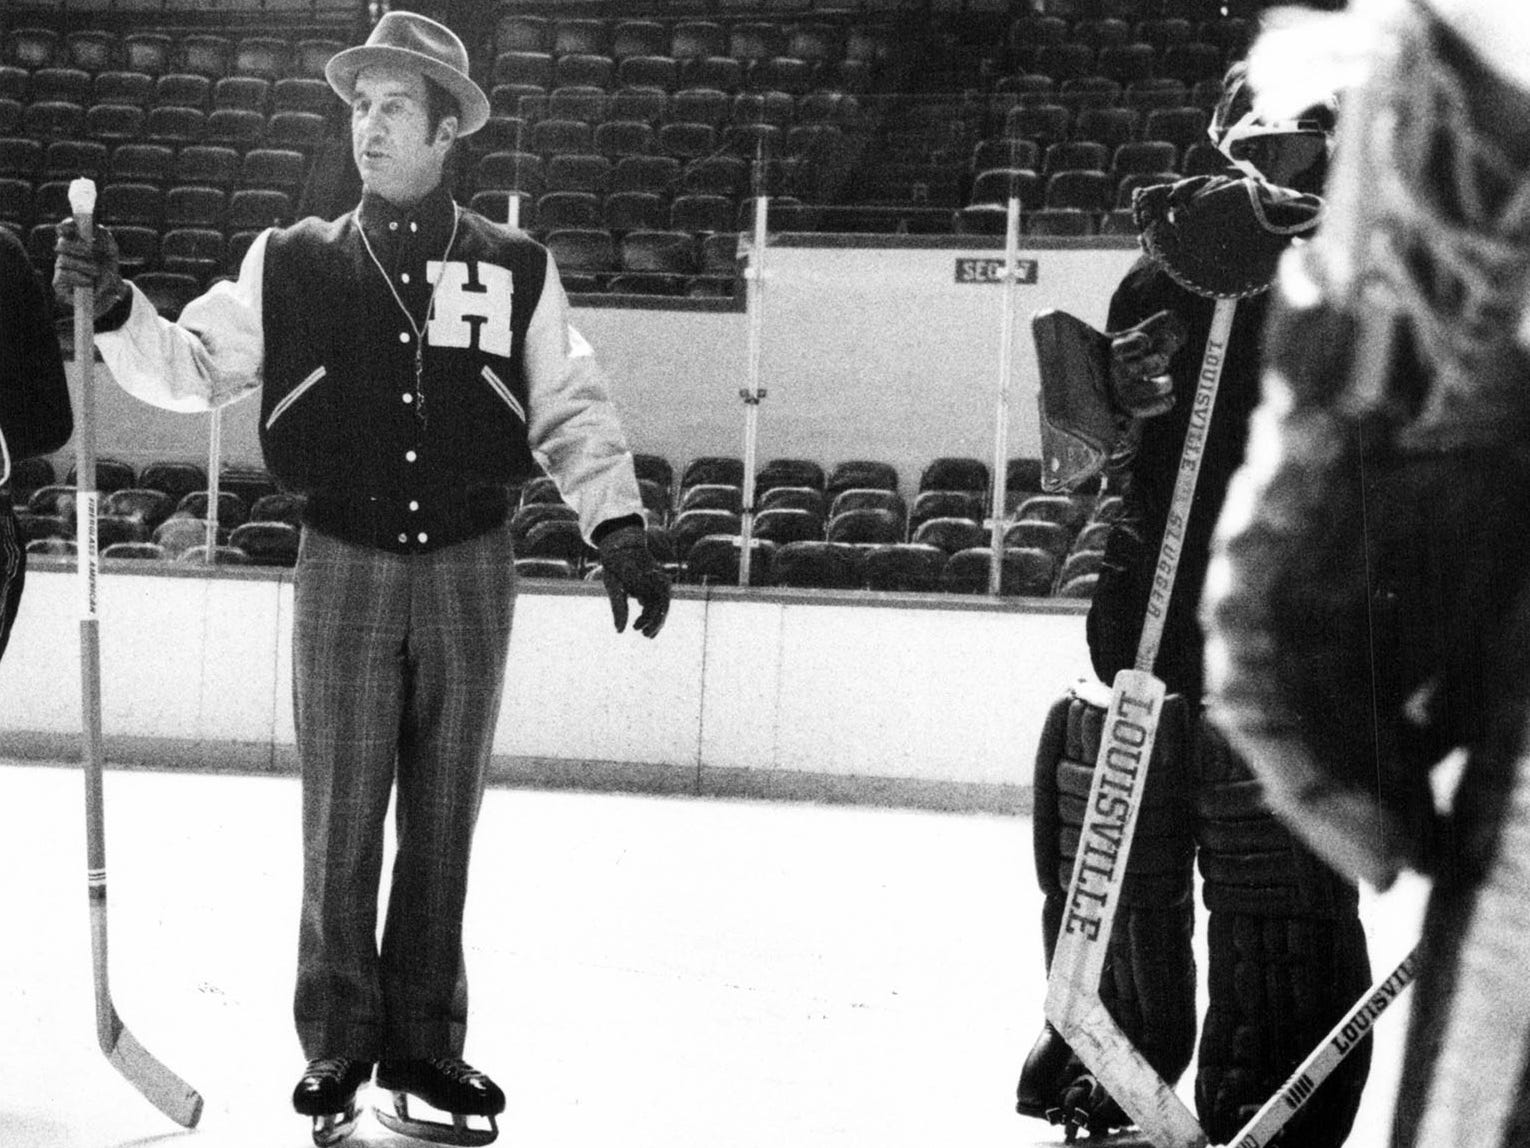 Ted Lindsay explains strategy at Hillsdale College practice in 1976